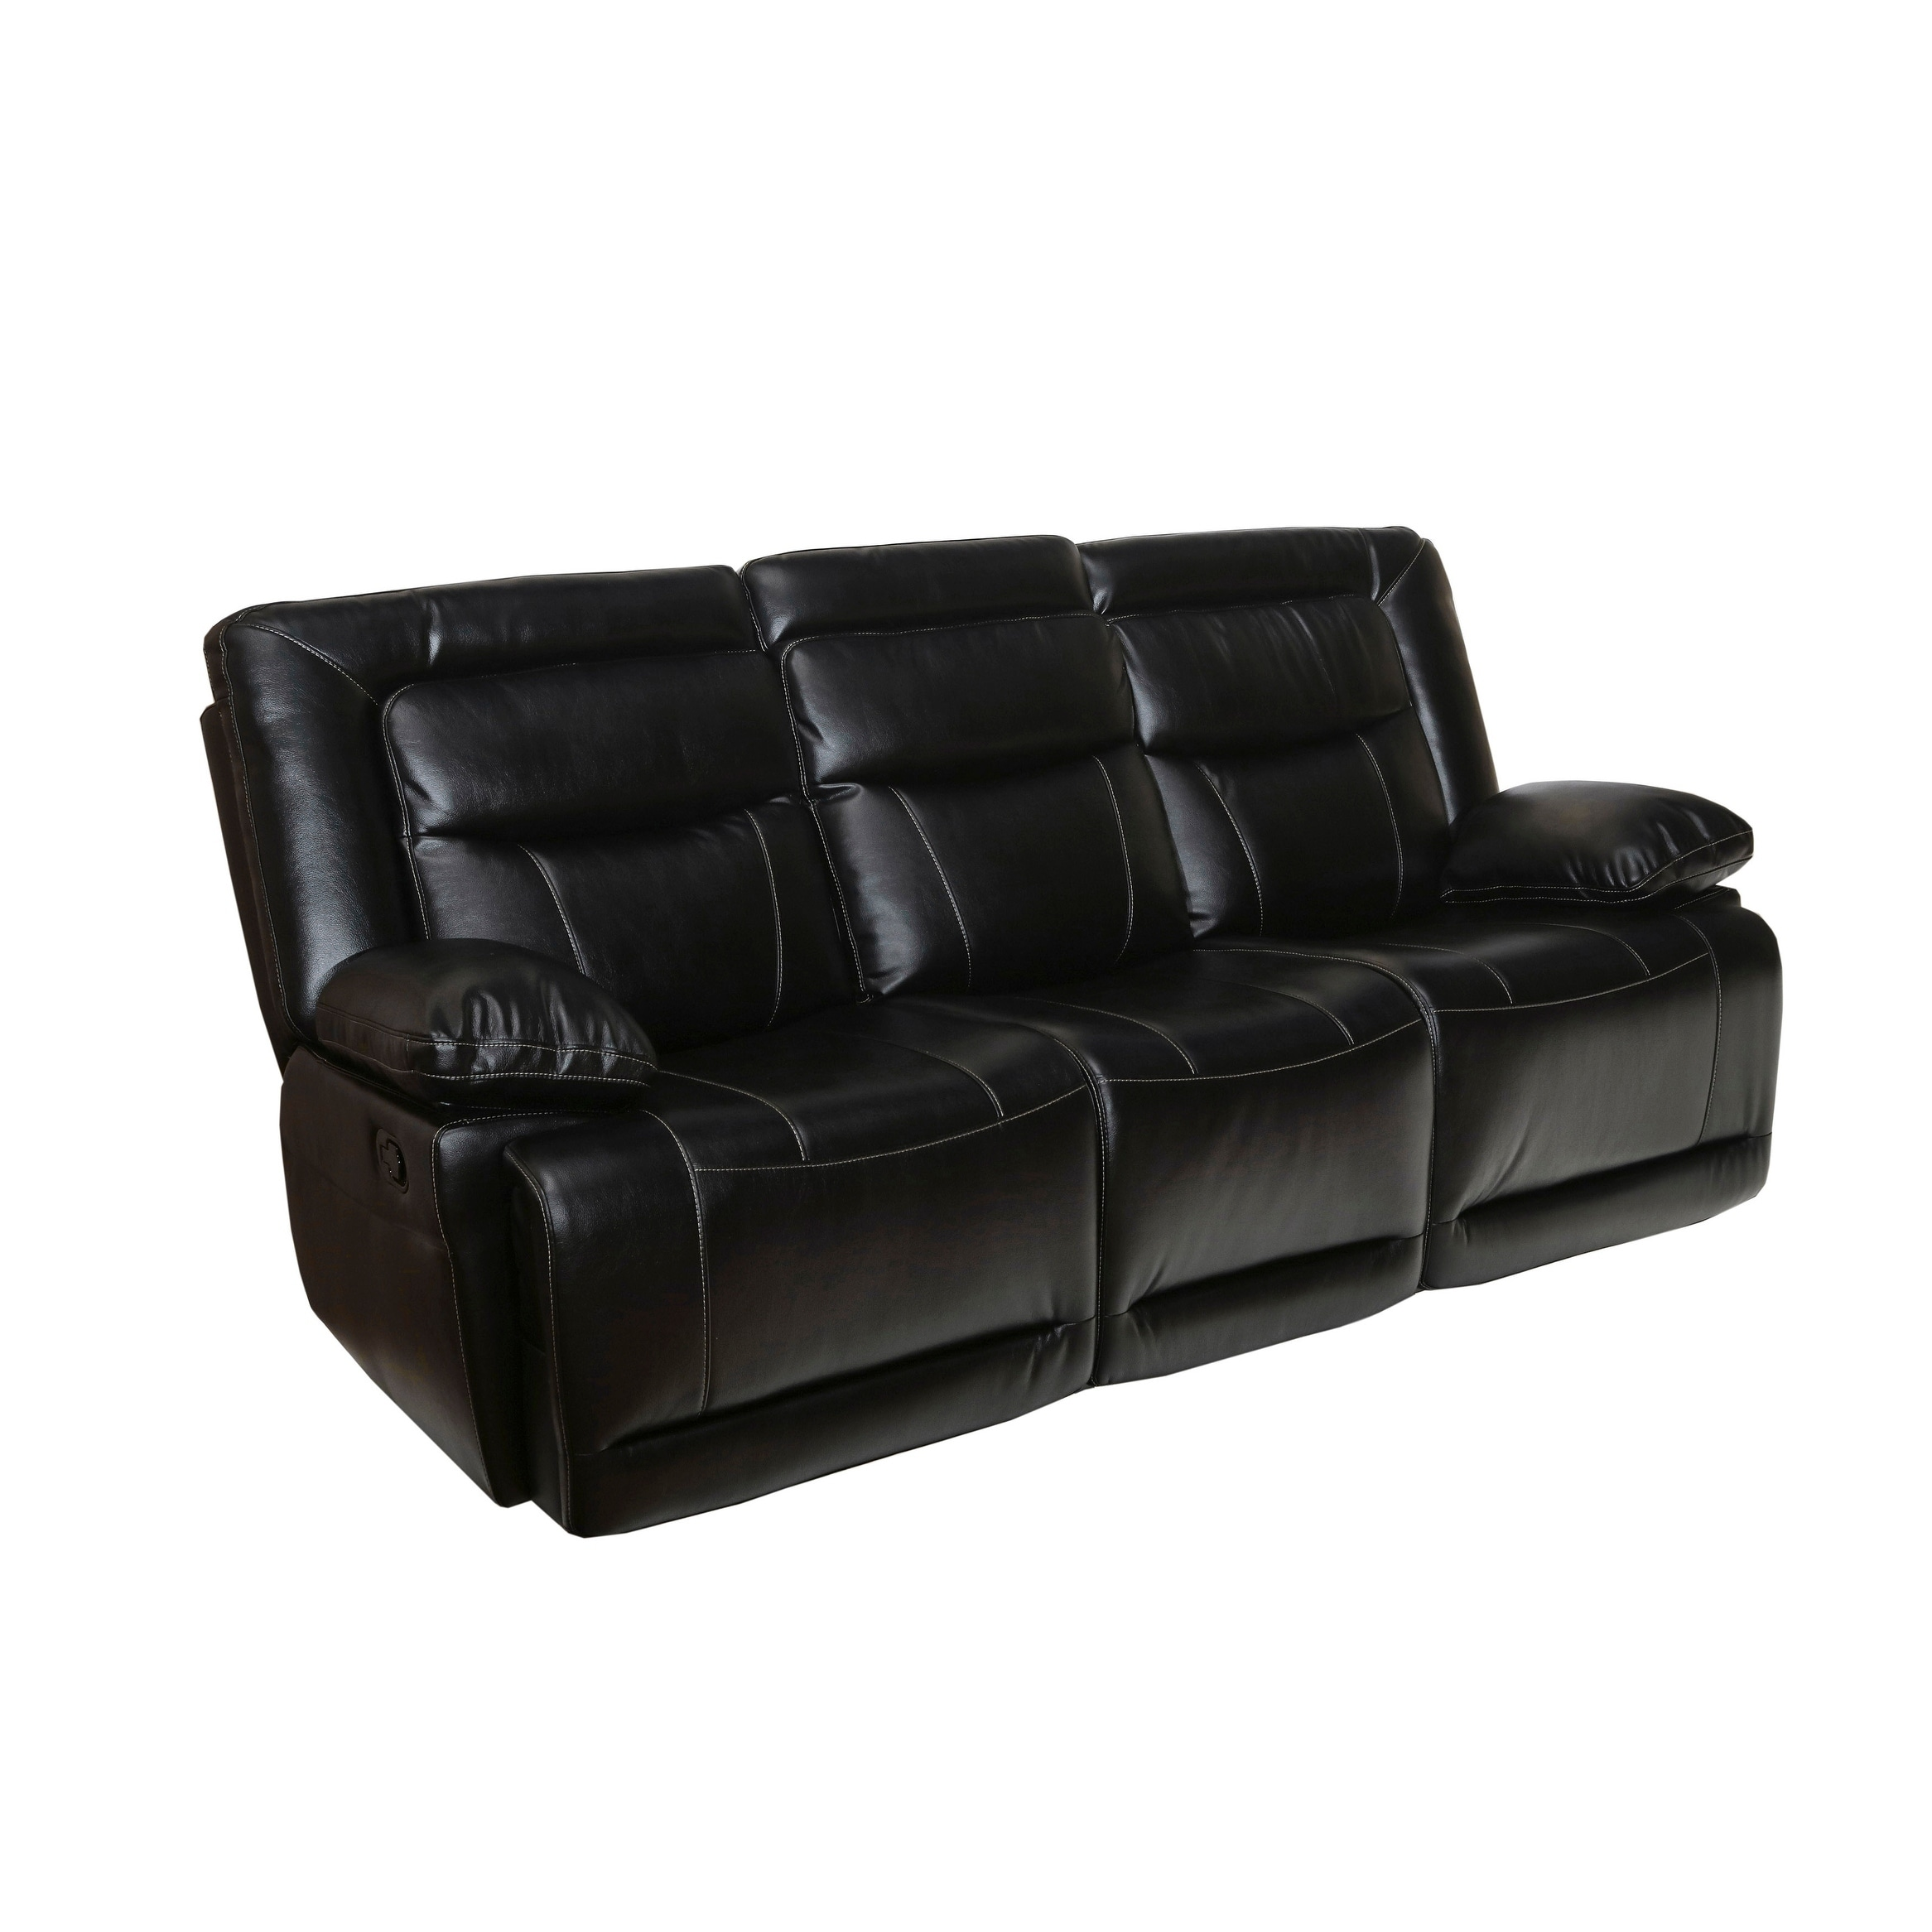 Recliner Pillow Torino Black Pillow Arms Dual Recliner Sofa